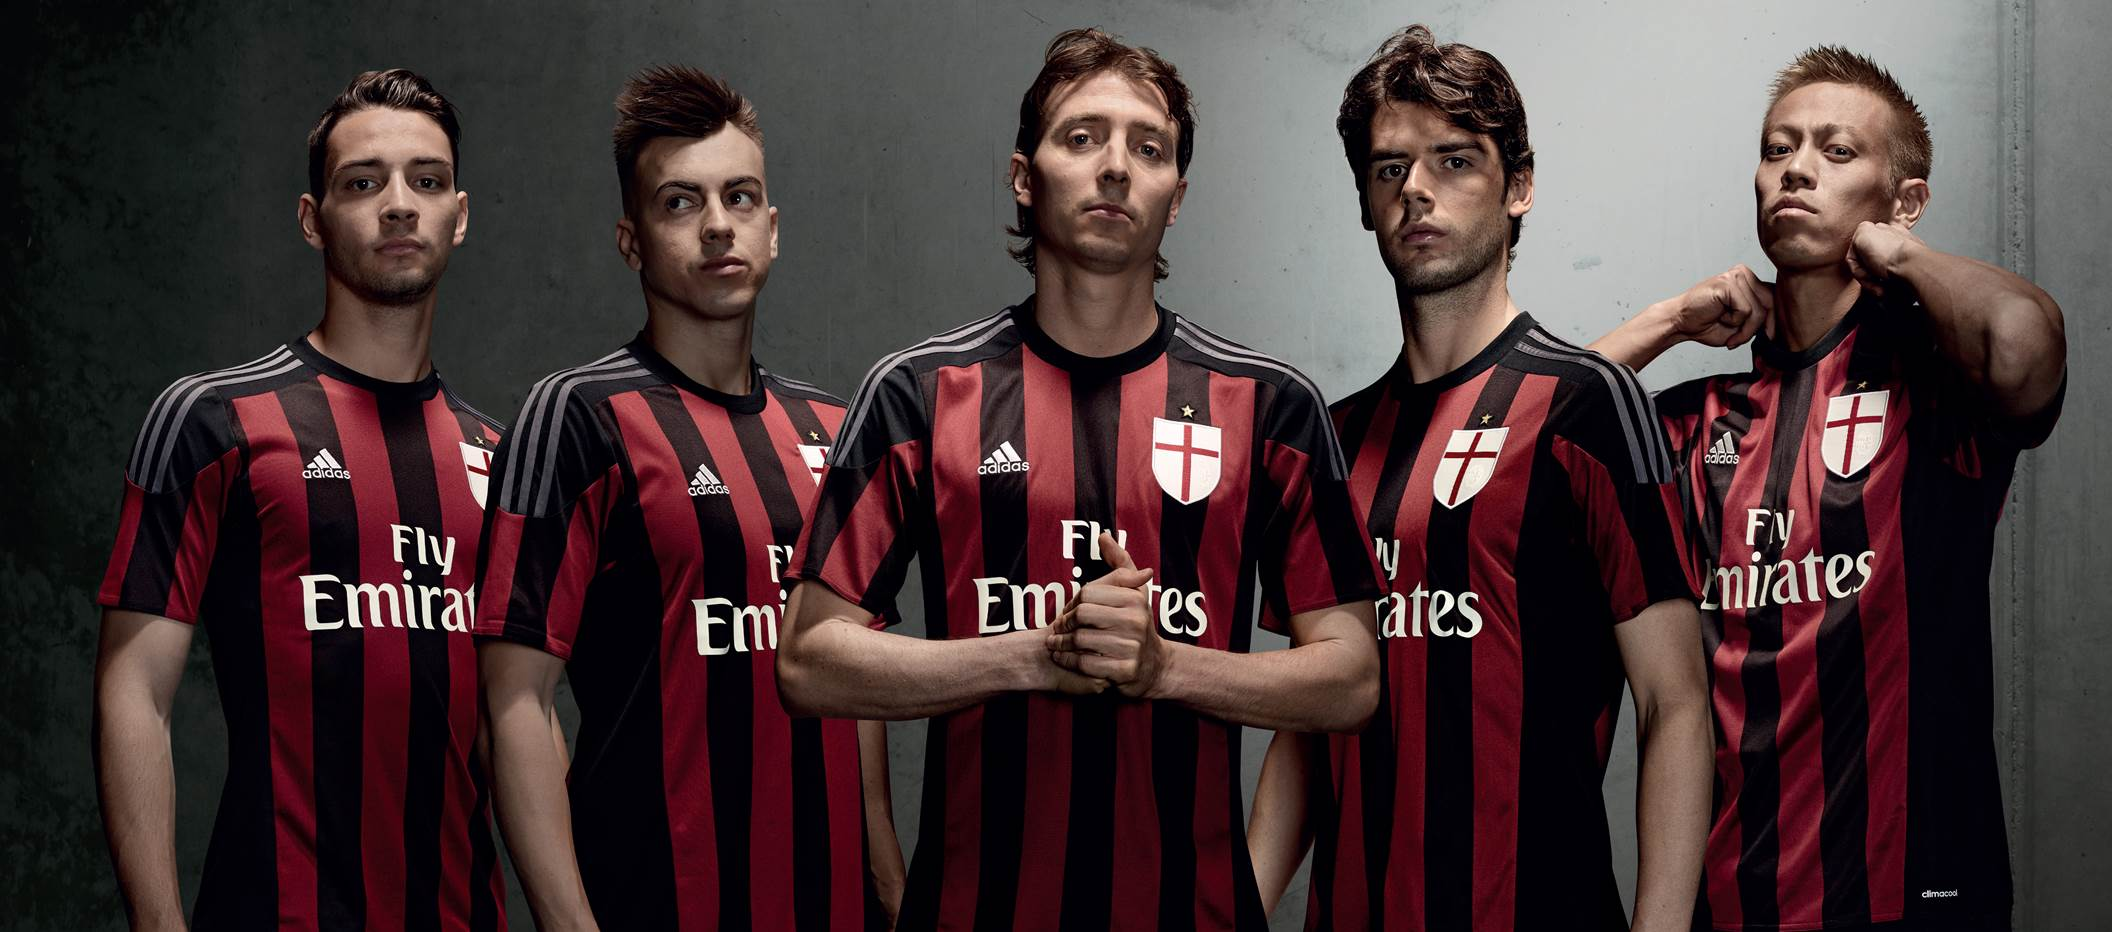 AC Milan Launches New 2015/16 Home Jersey